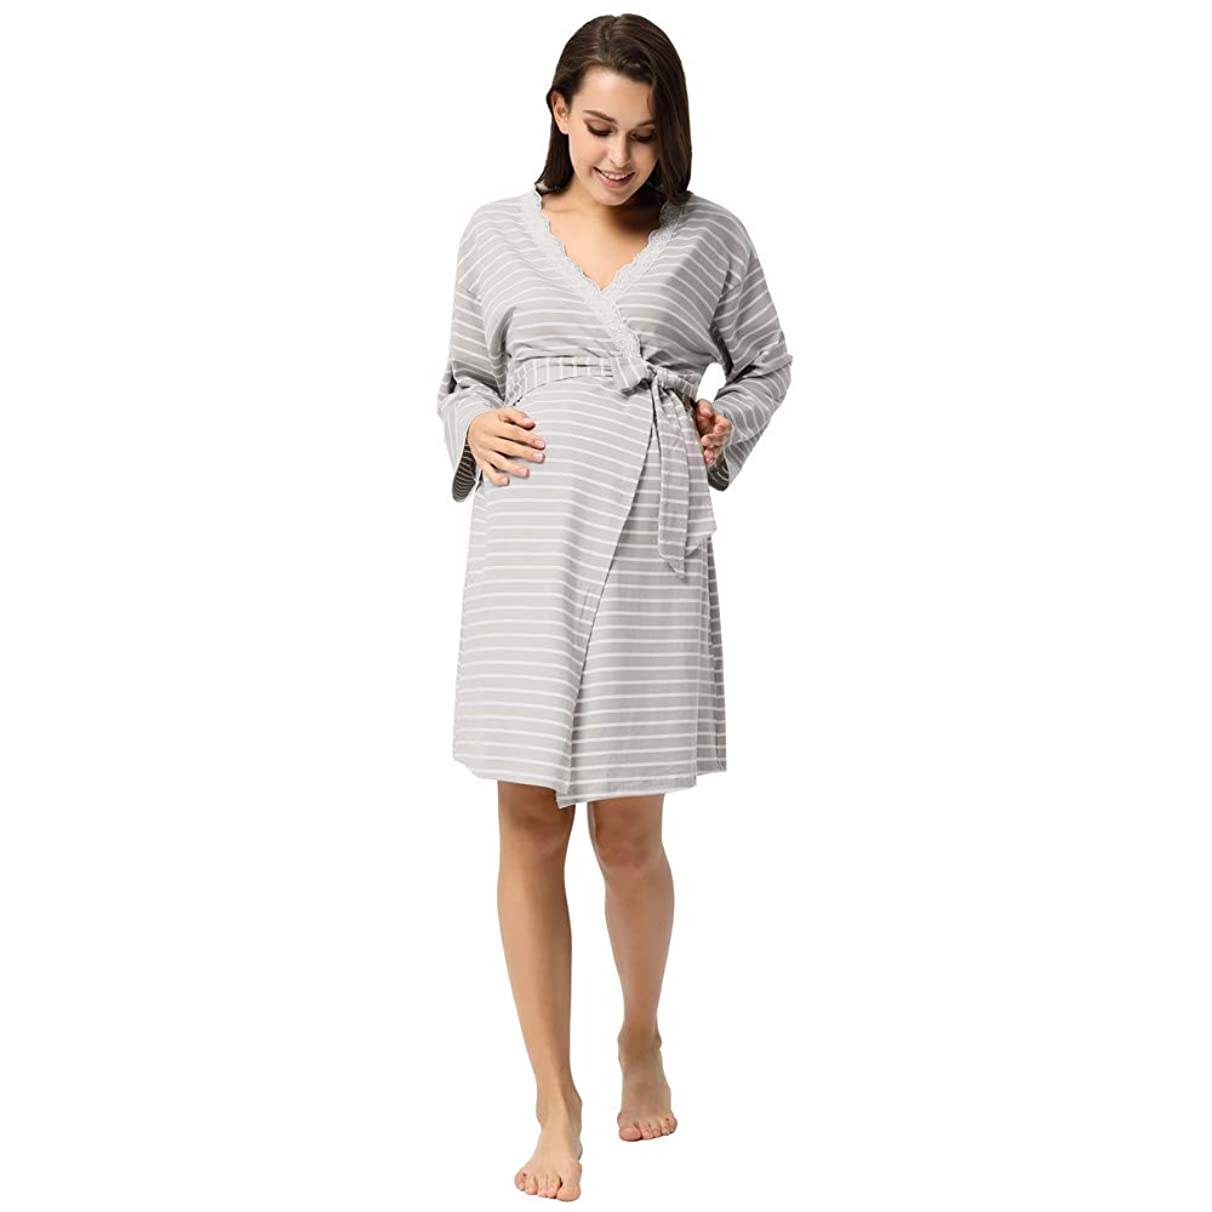 Comhere Maternity Bathrobes,Pregnancy Labor Robe Delivery Hospital Nursing Nightgowns Sleepshirts for Breastfeeding